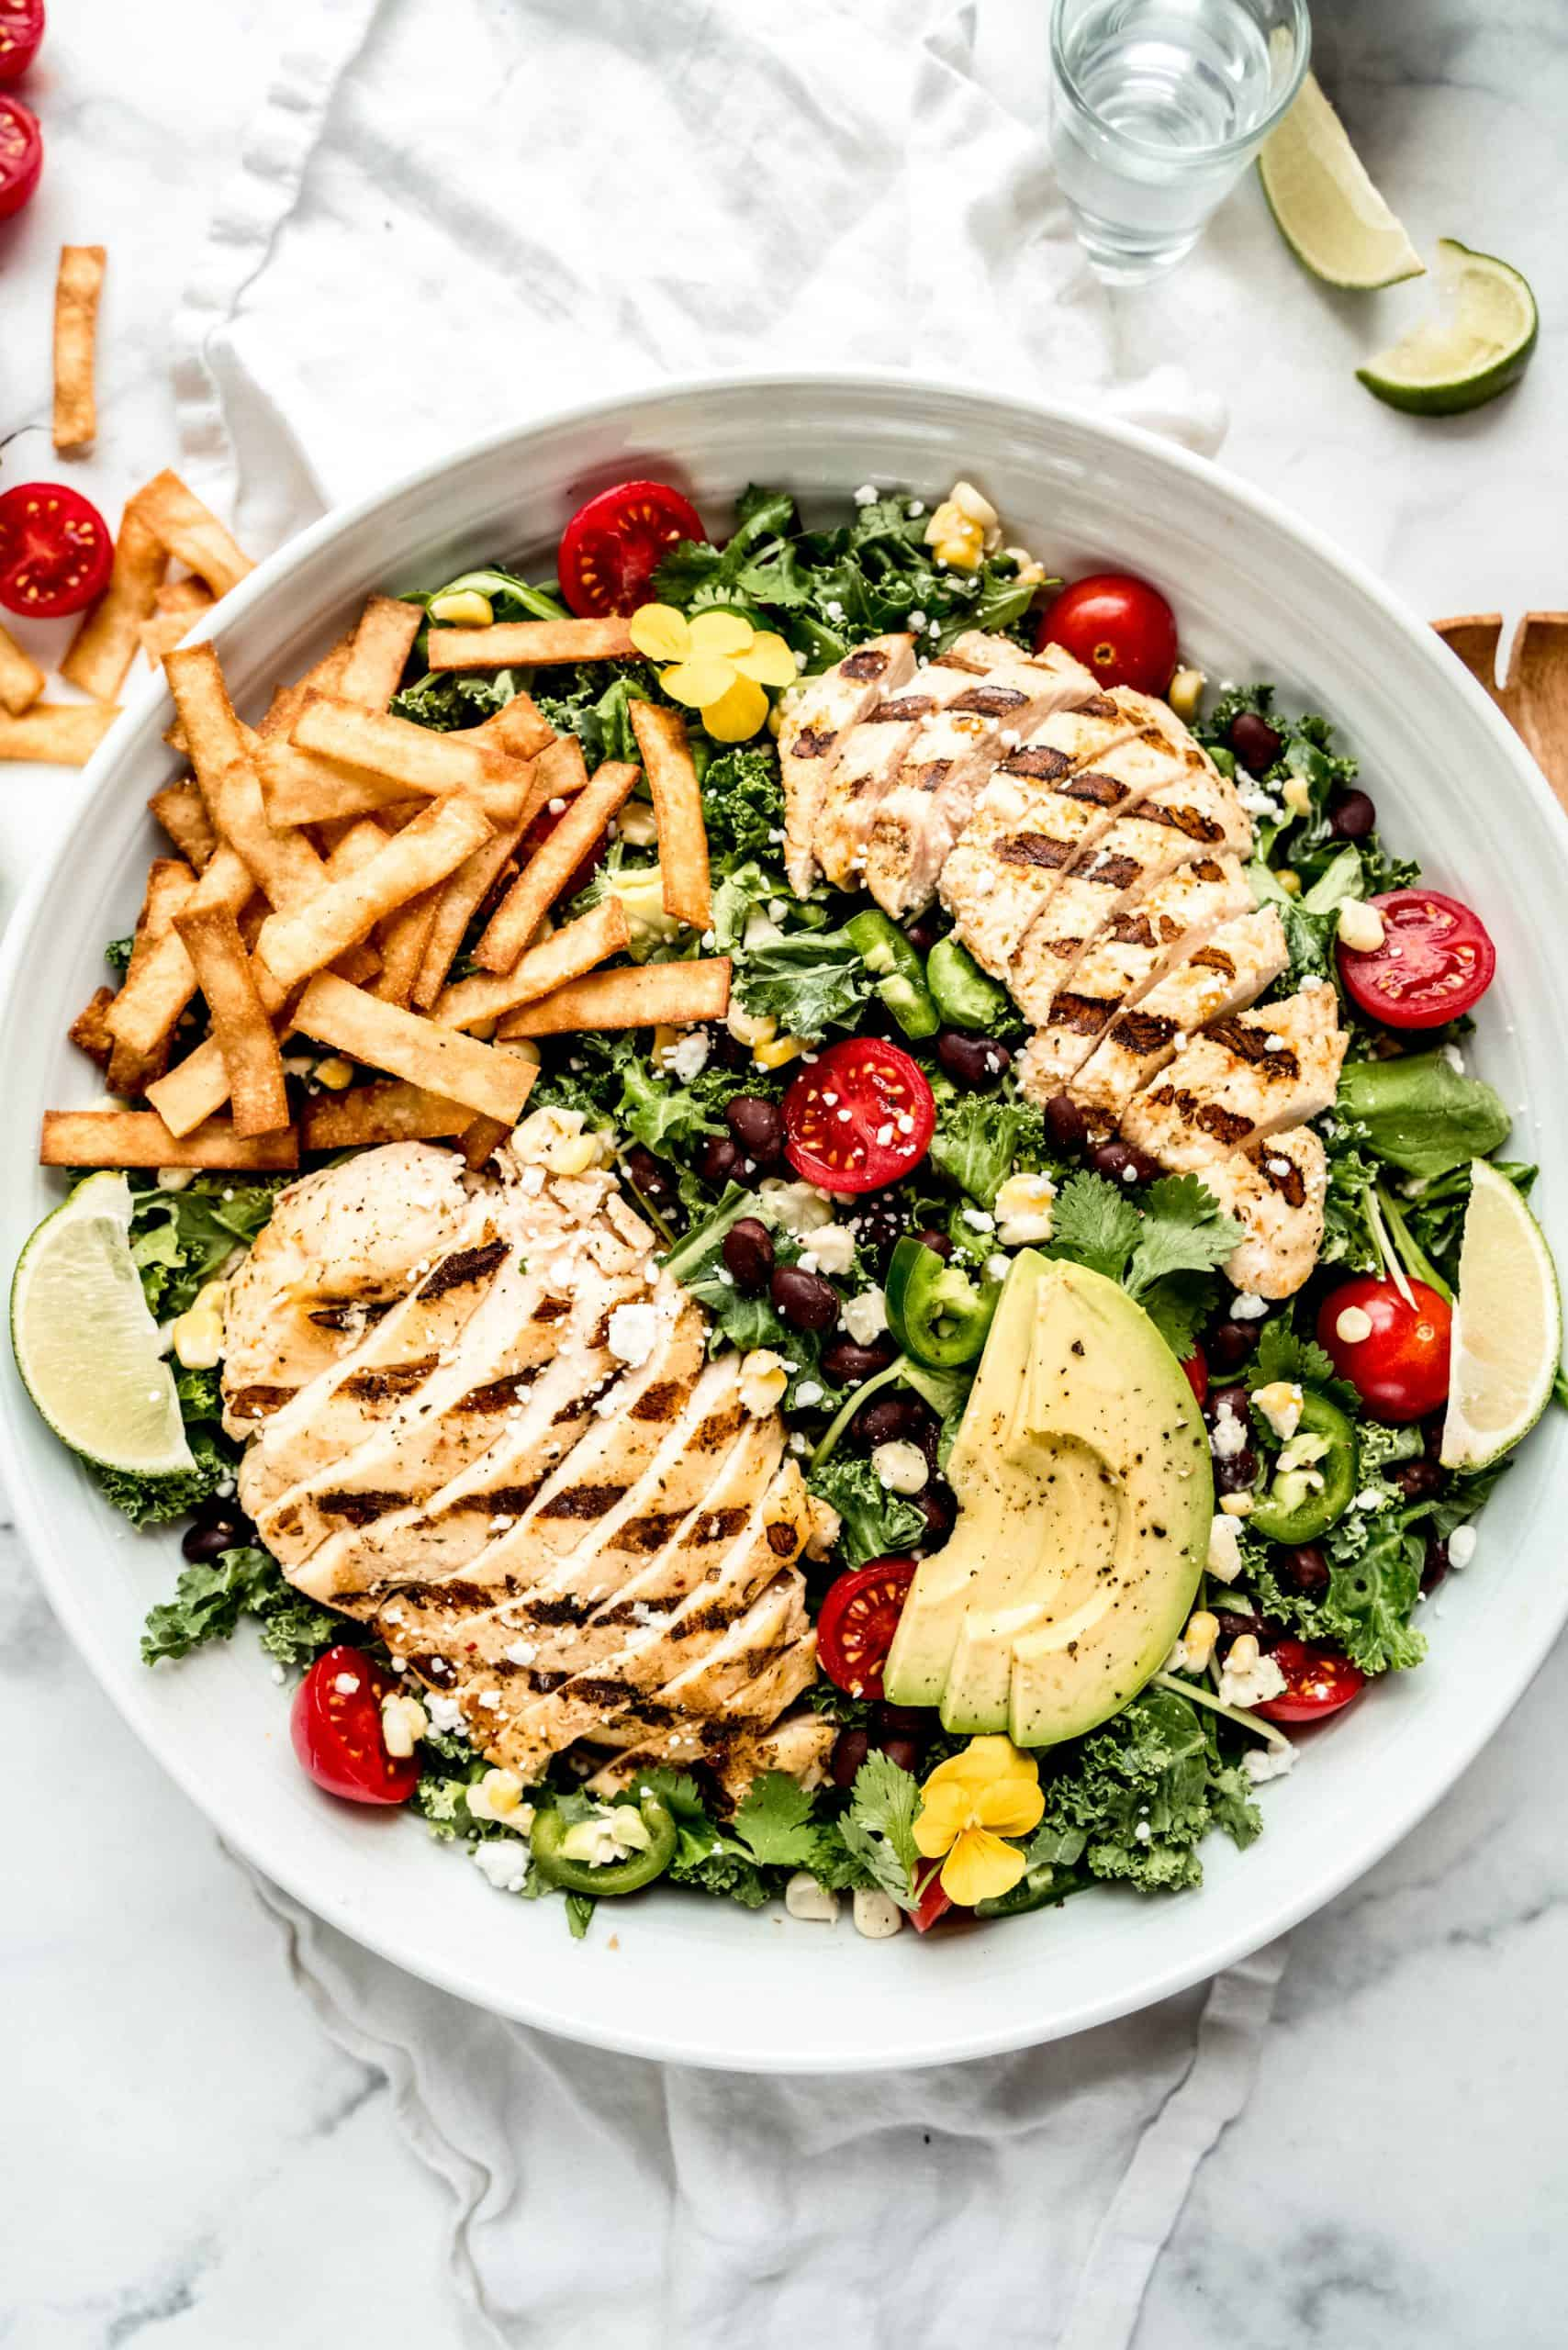 Meal plan ideas: Grilled chicken salad at Windy City Dinner Fairy